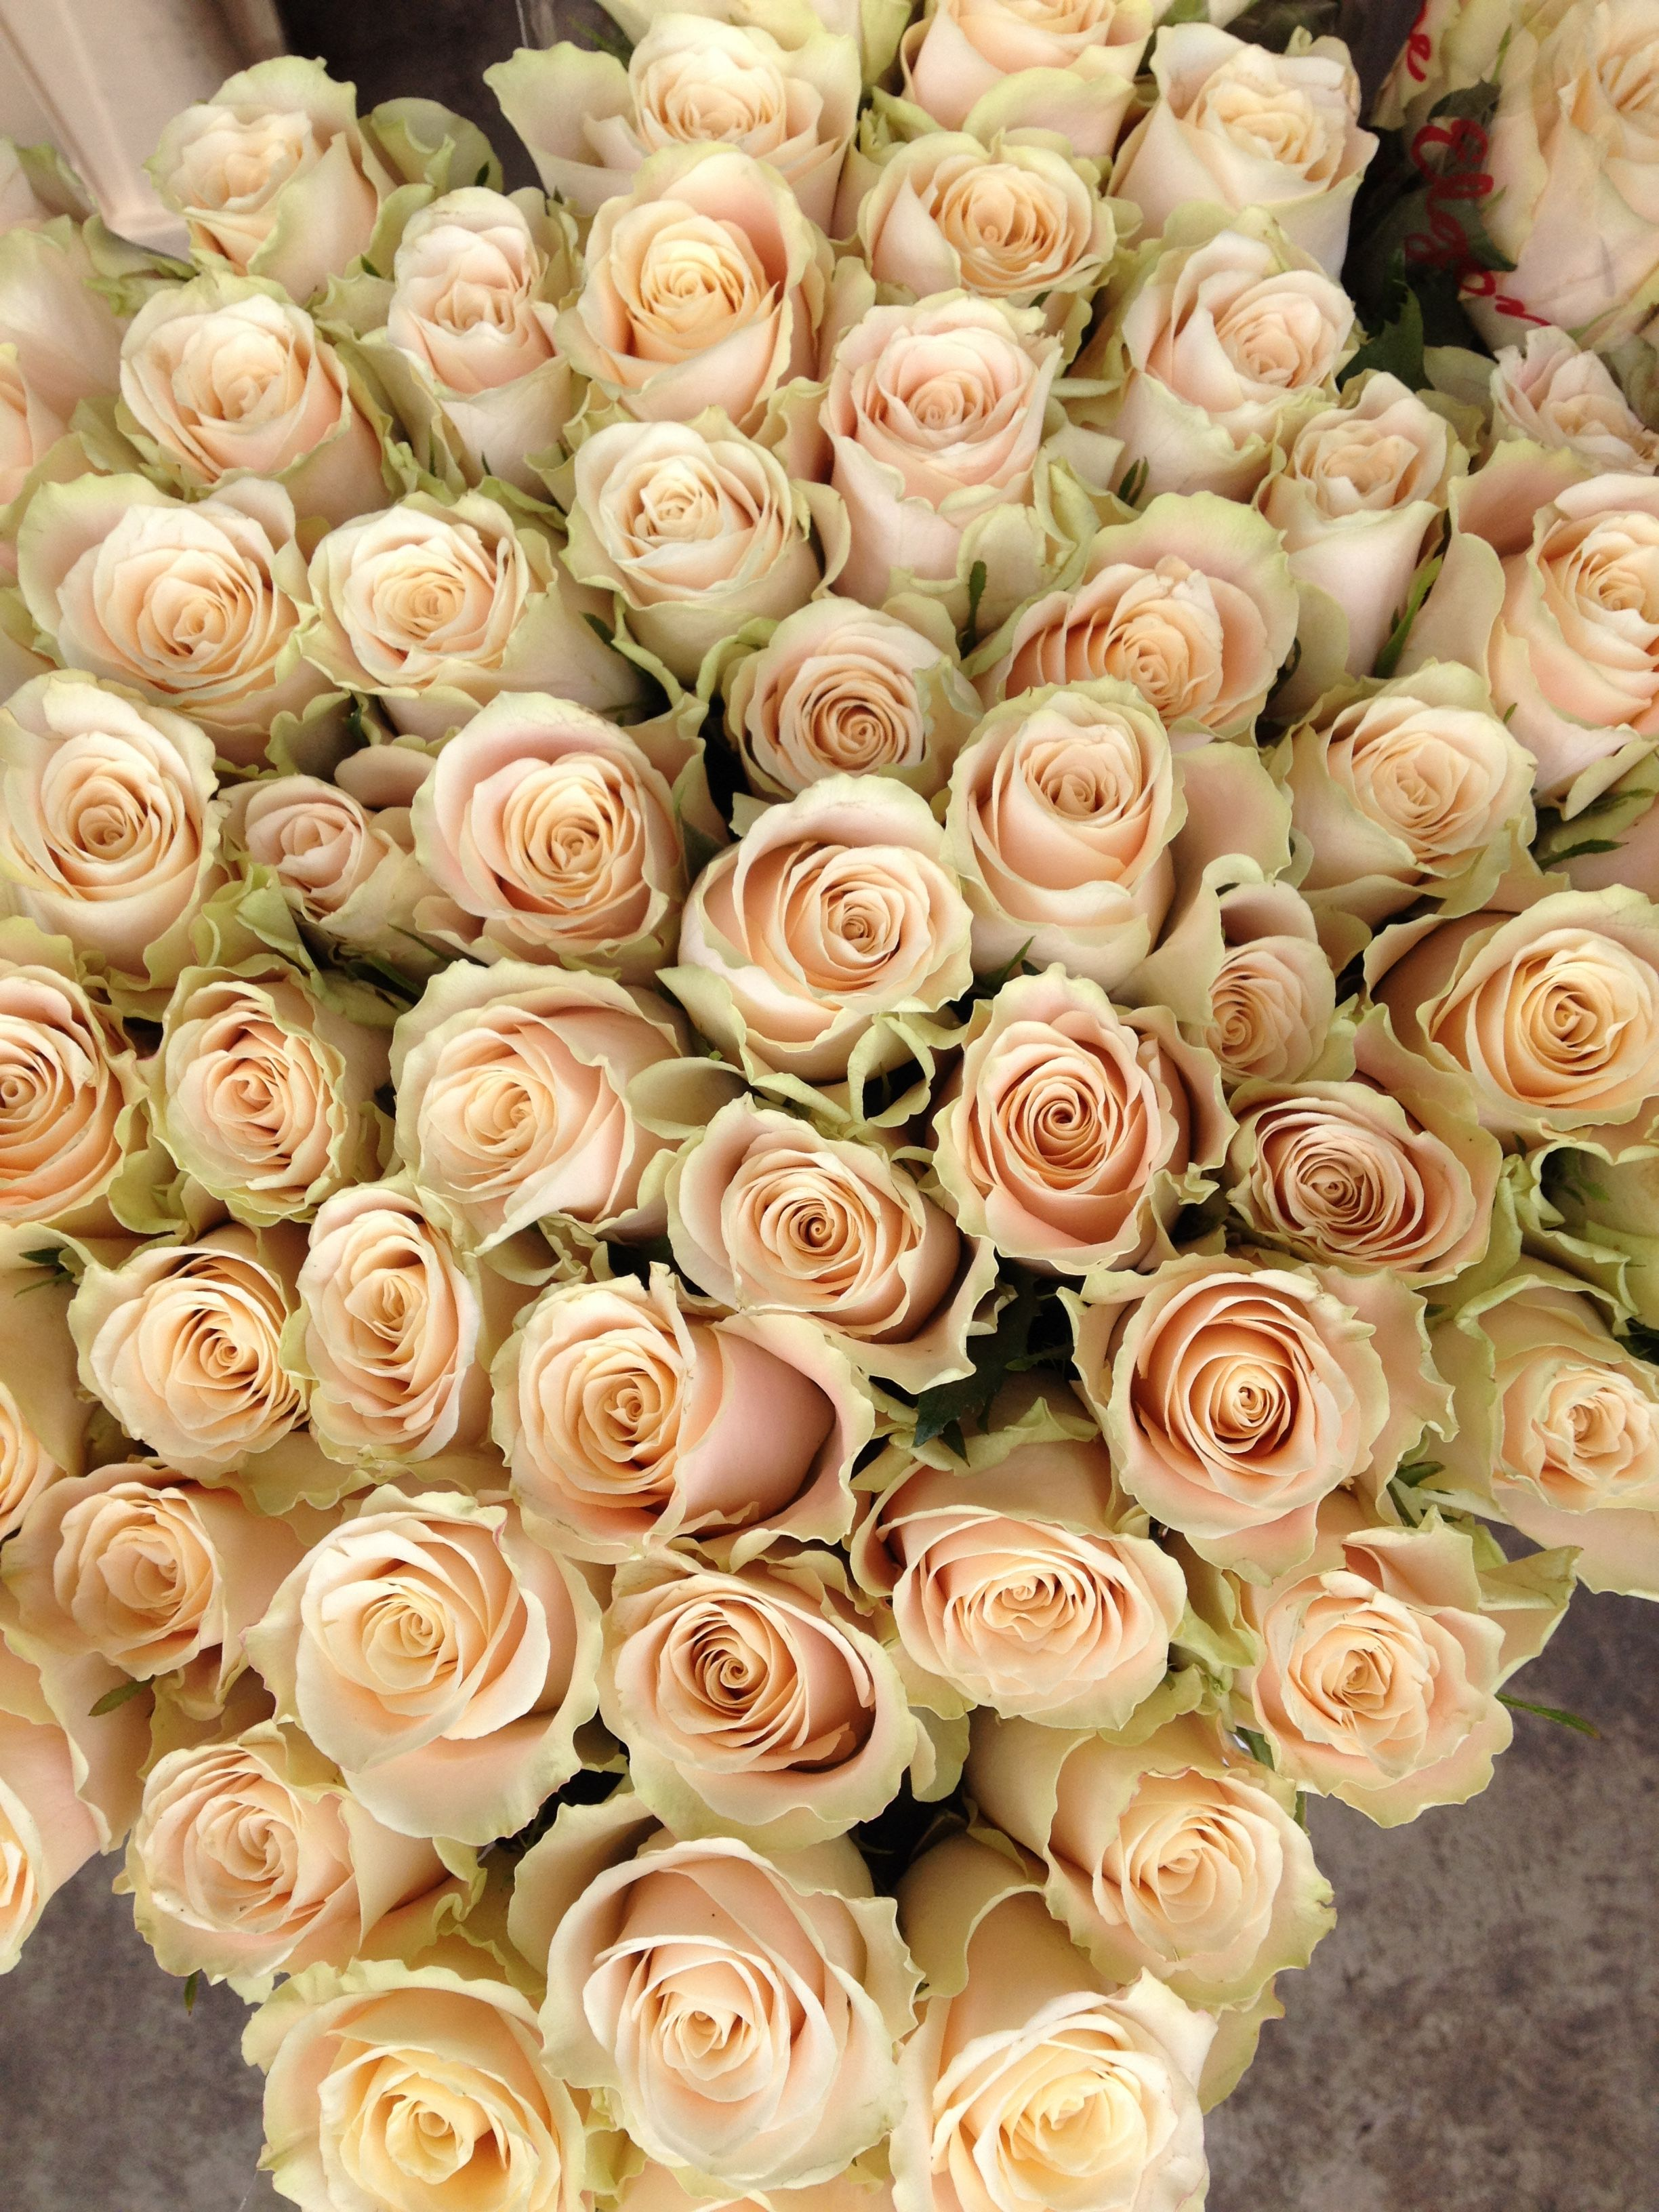 Home bulk roses peach roses - Sold In Bunches Of 20 Stems From The Flowermonger The Wholesale Floral Home Delivery Service